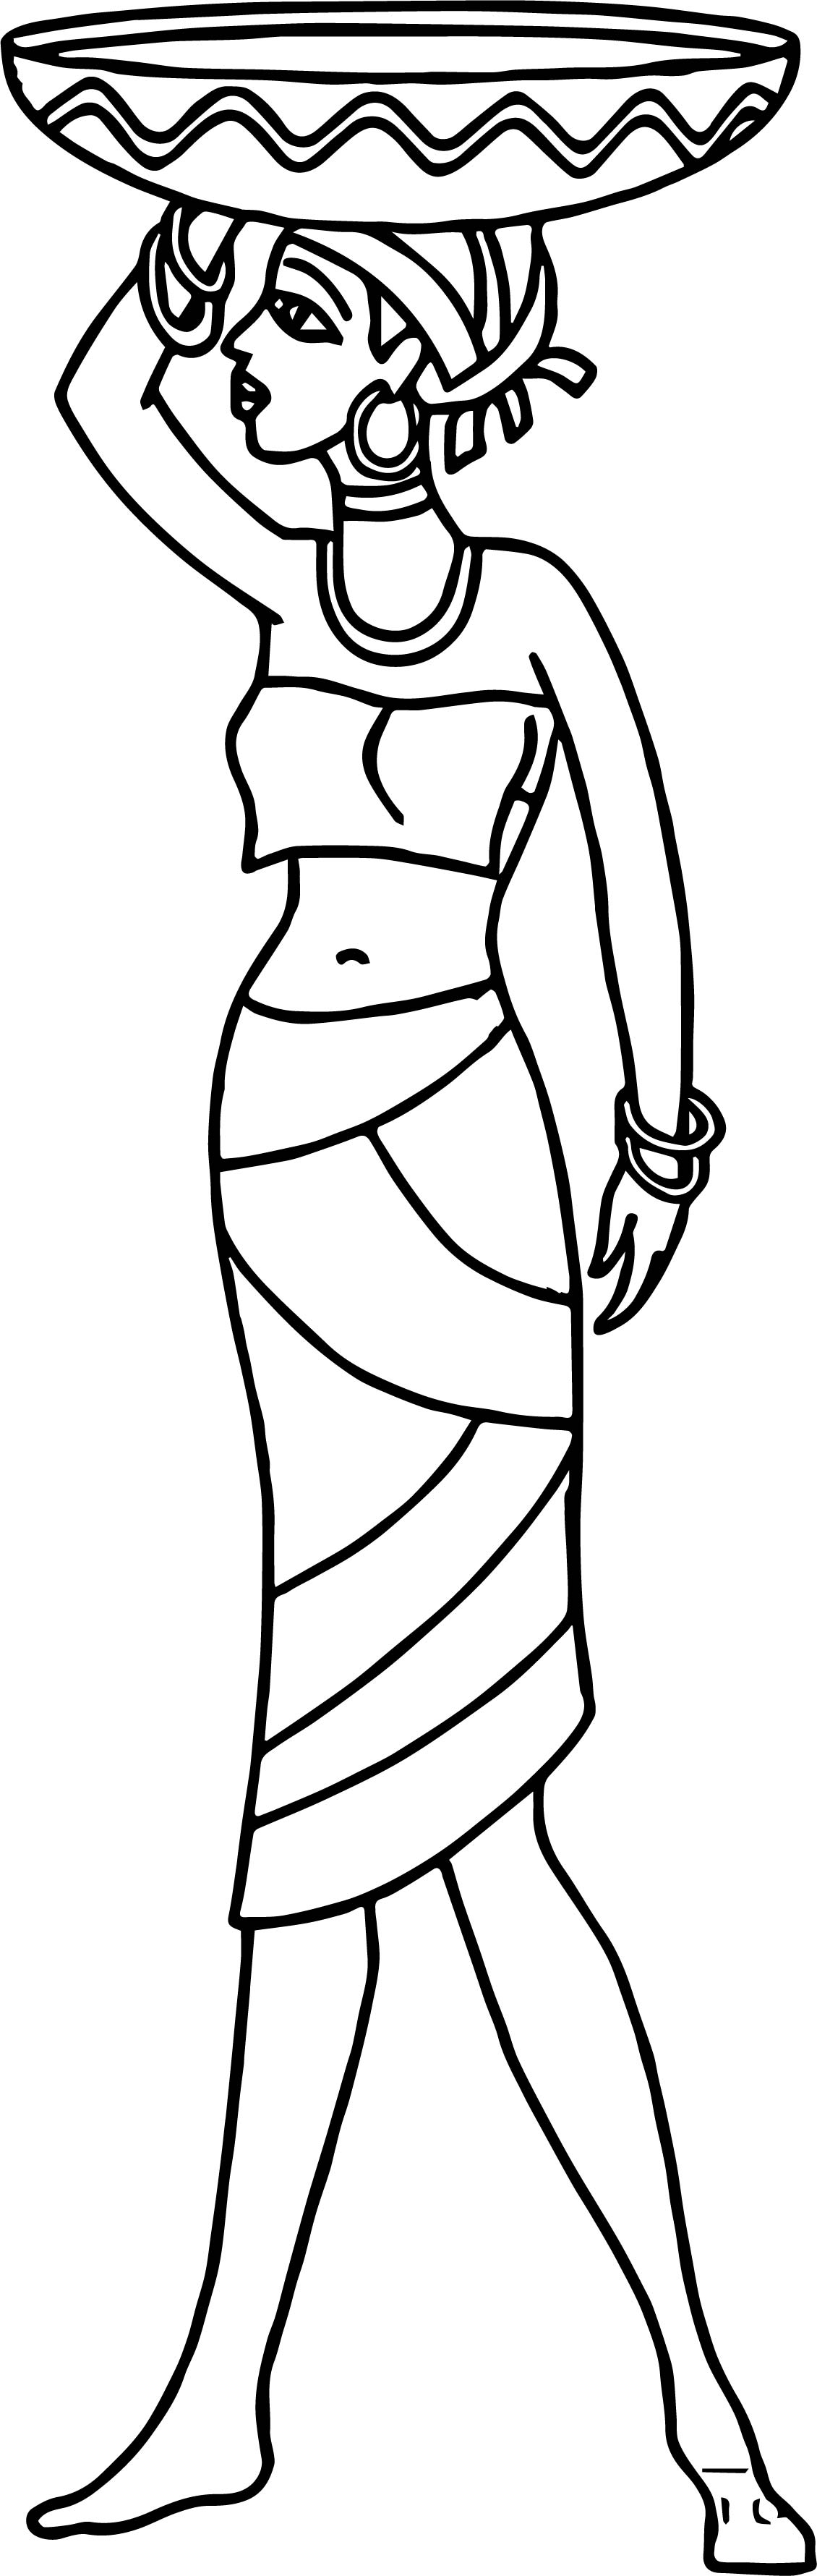 Africa Woman Carries Basket Coloring Page | Wecoloringpage.com